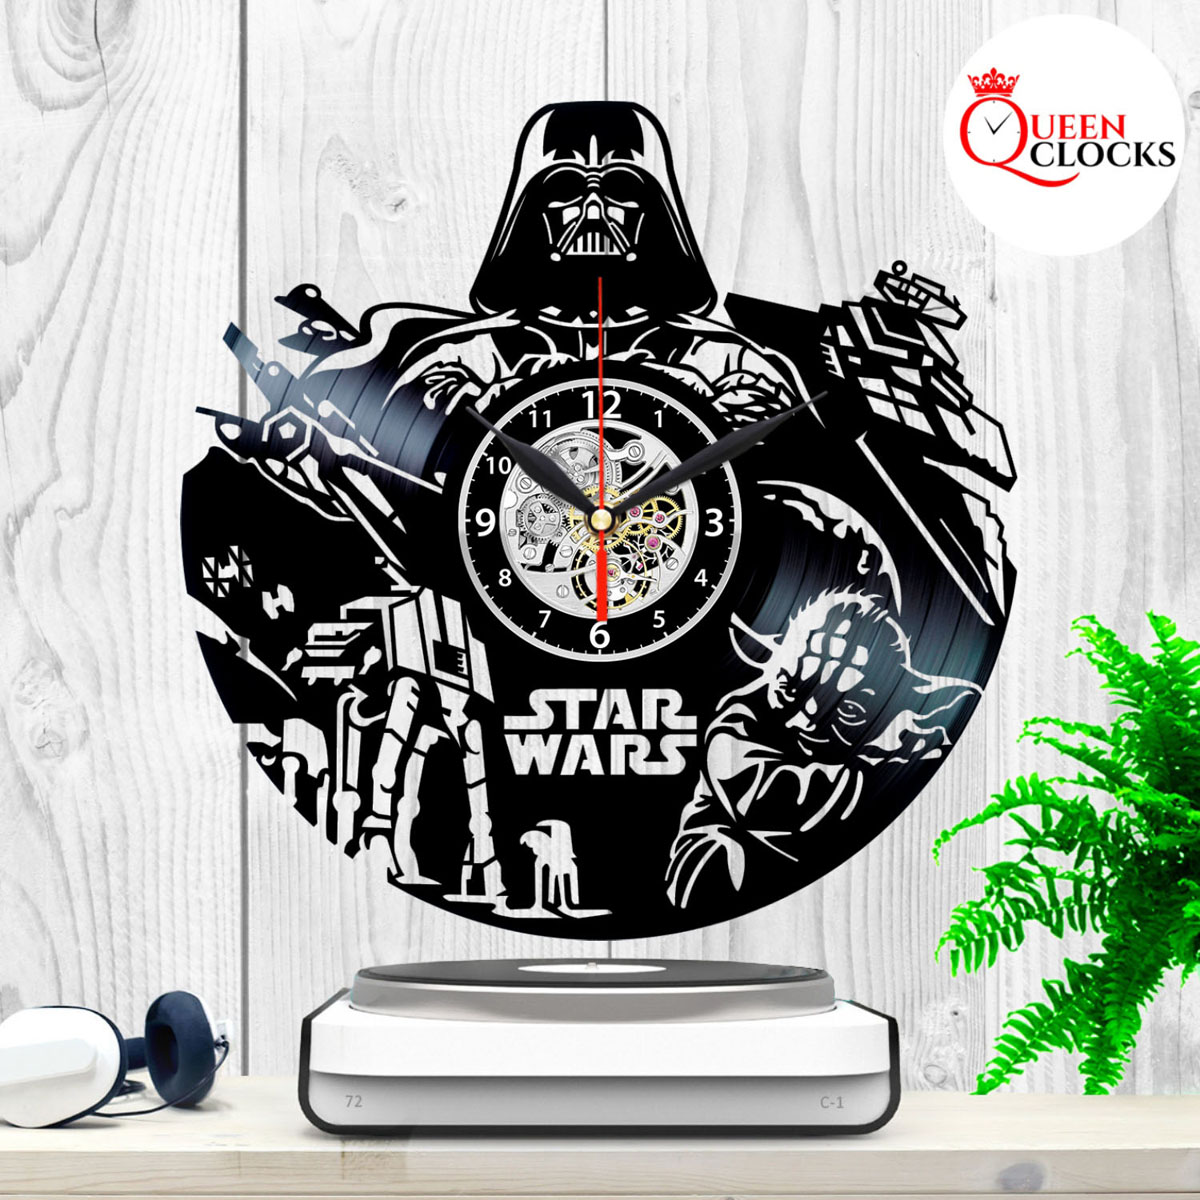 a2795f7eef3 Details about Star Wars Darth Vader Yoda Vinyl Record Wall Clock Home Room  Decor Best Dad Gift